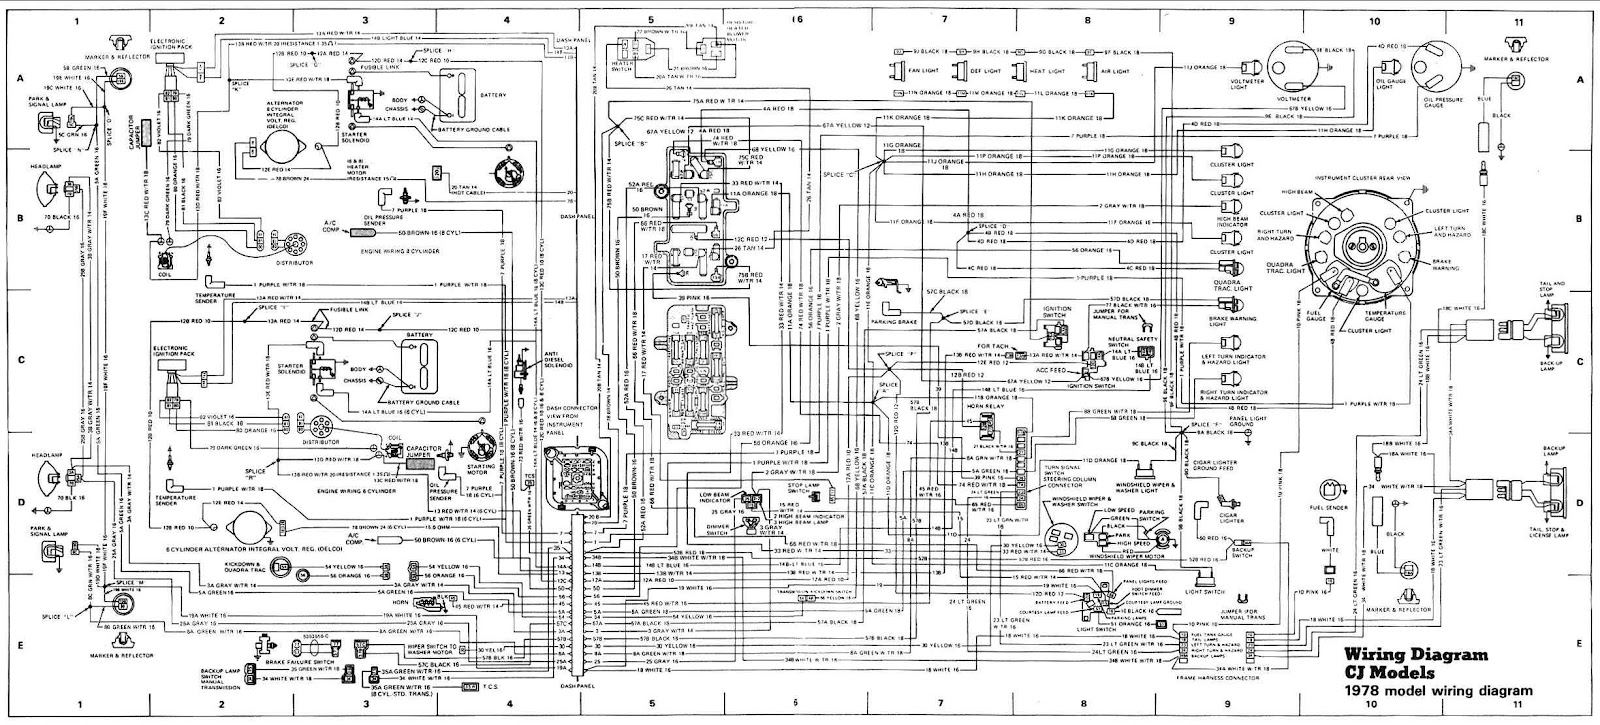 jeep cj models 1978 complete electrical wiring diagram 2001 opel astra estate 2001 opel astra interior [ 1600 x 725 Pixel ]